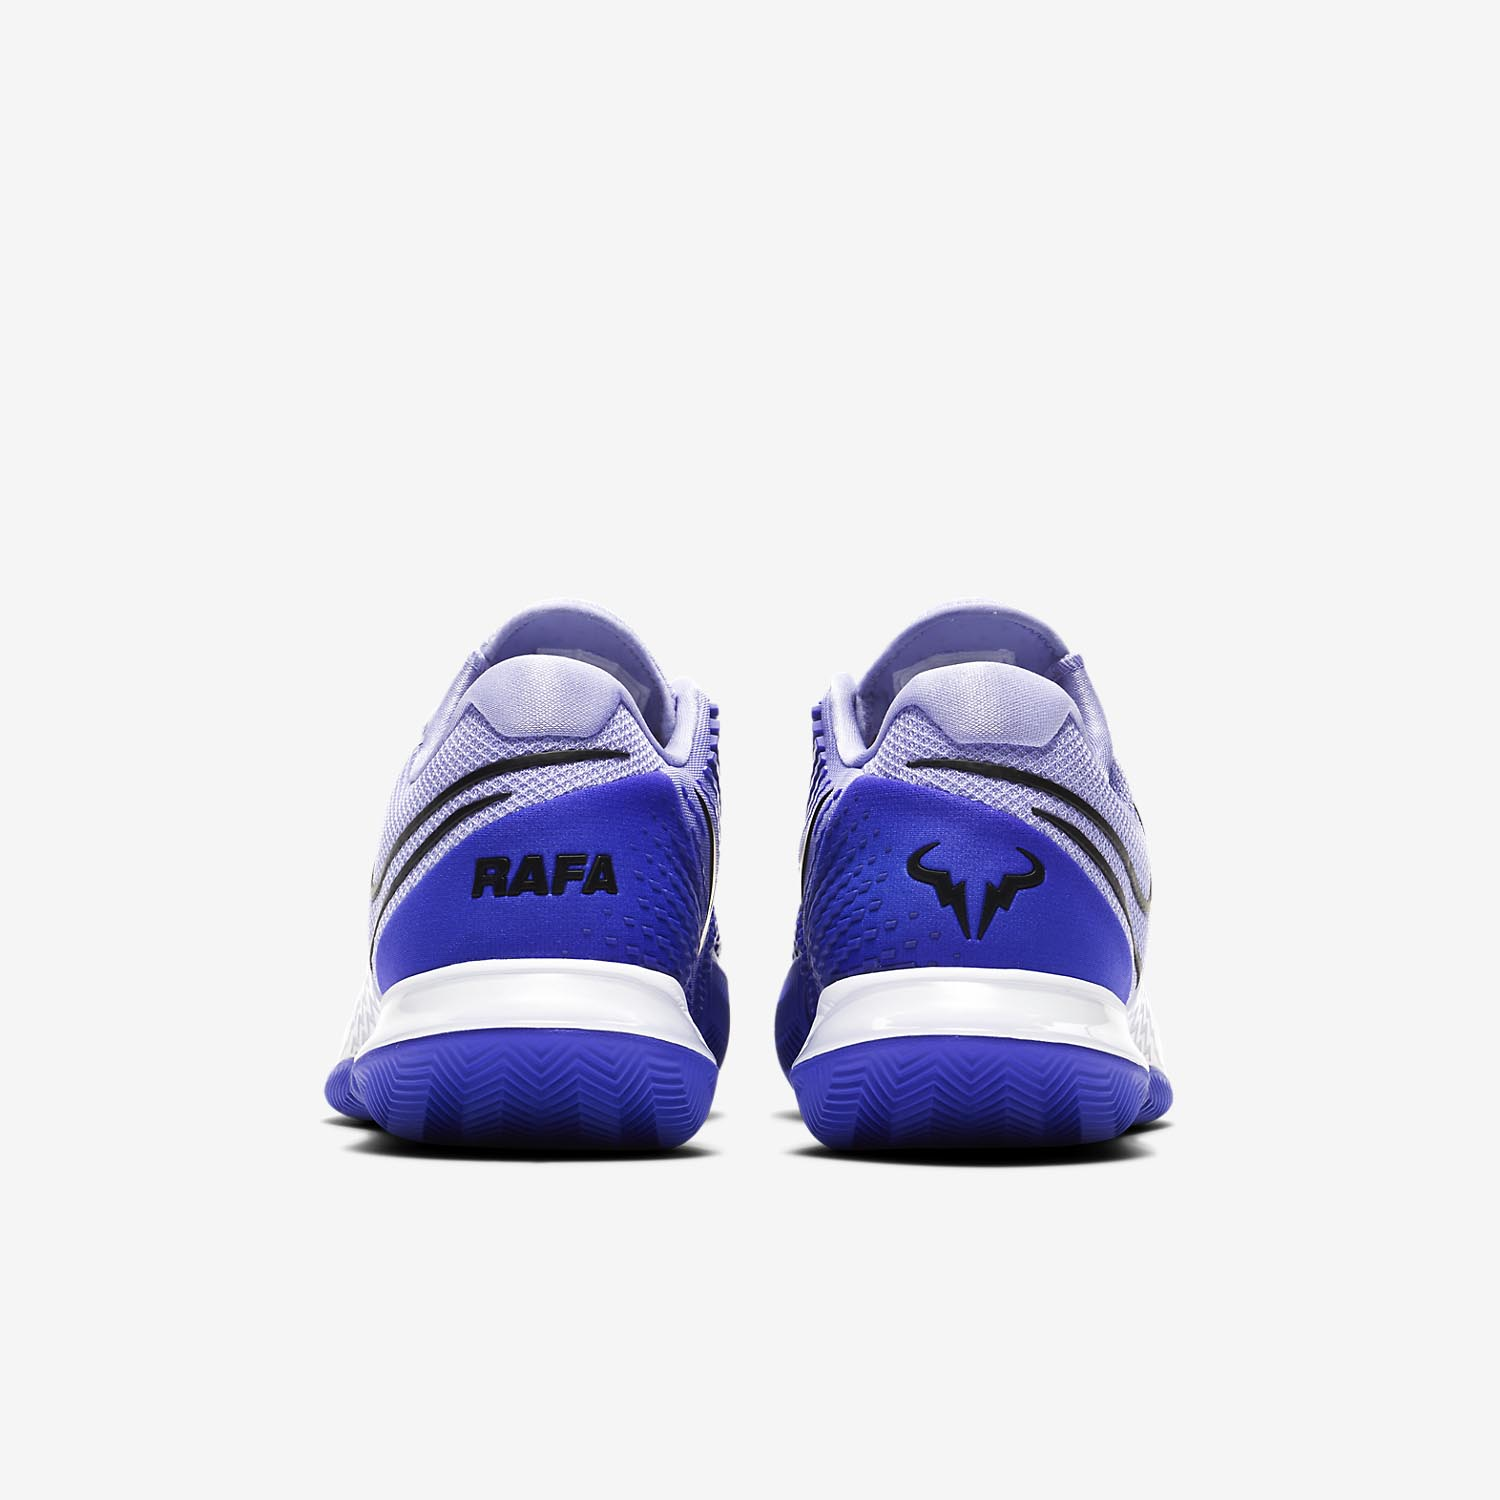 Nike Air Zoom Vapor Cage 4 Clay Purple PulseBlackPersian VioletWhite